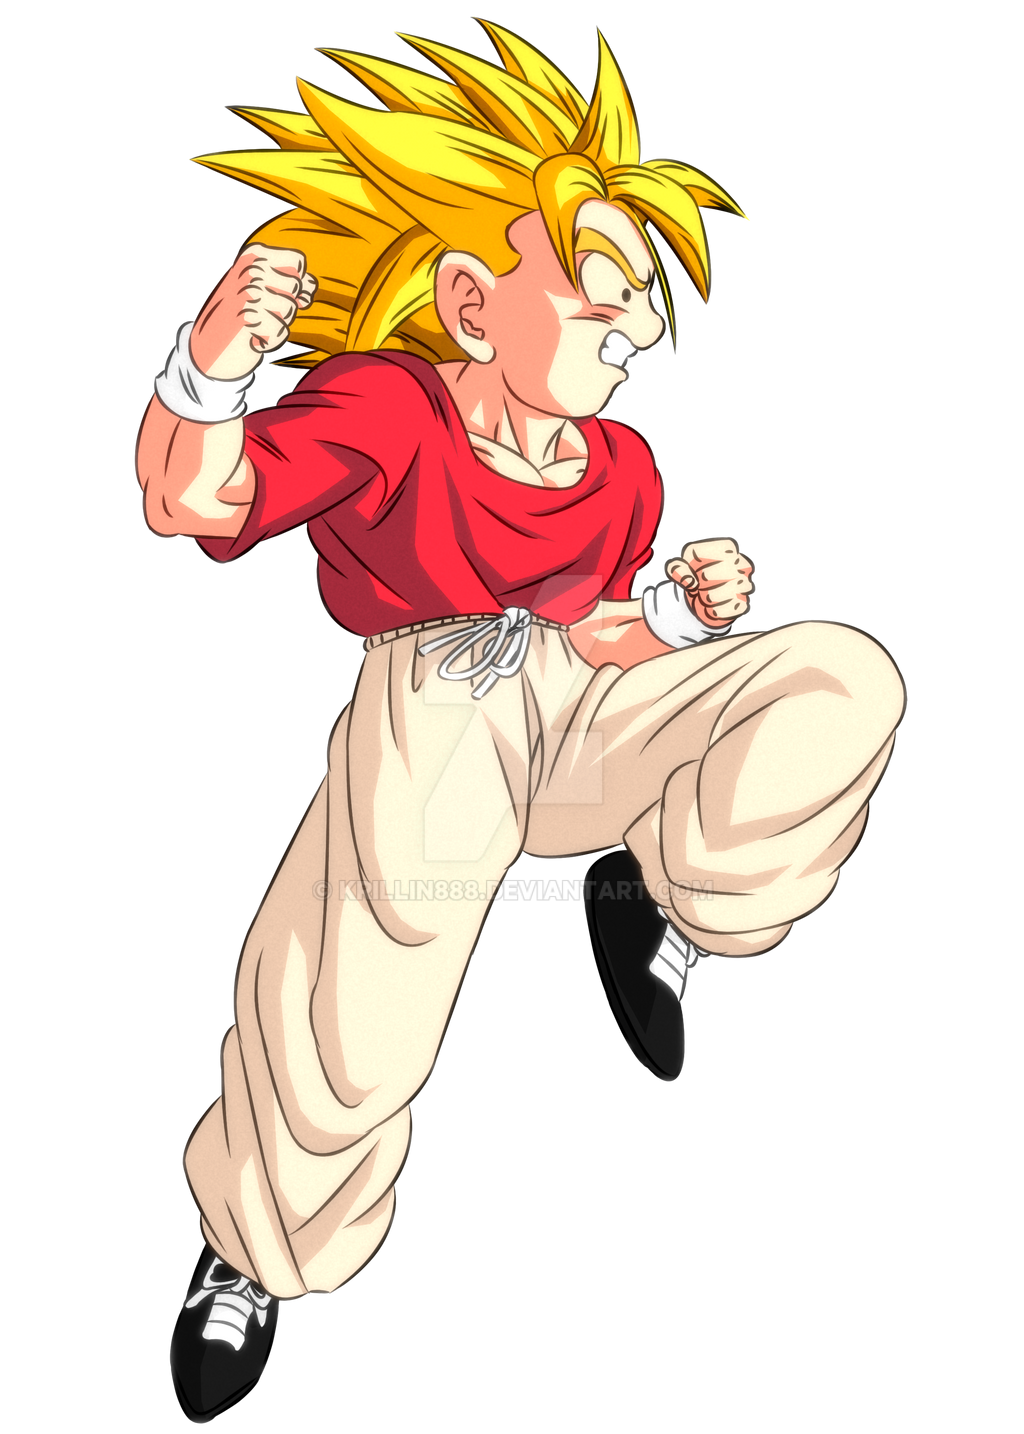 Super Saiyan Krillin by Krillin888 on DeviantArt